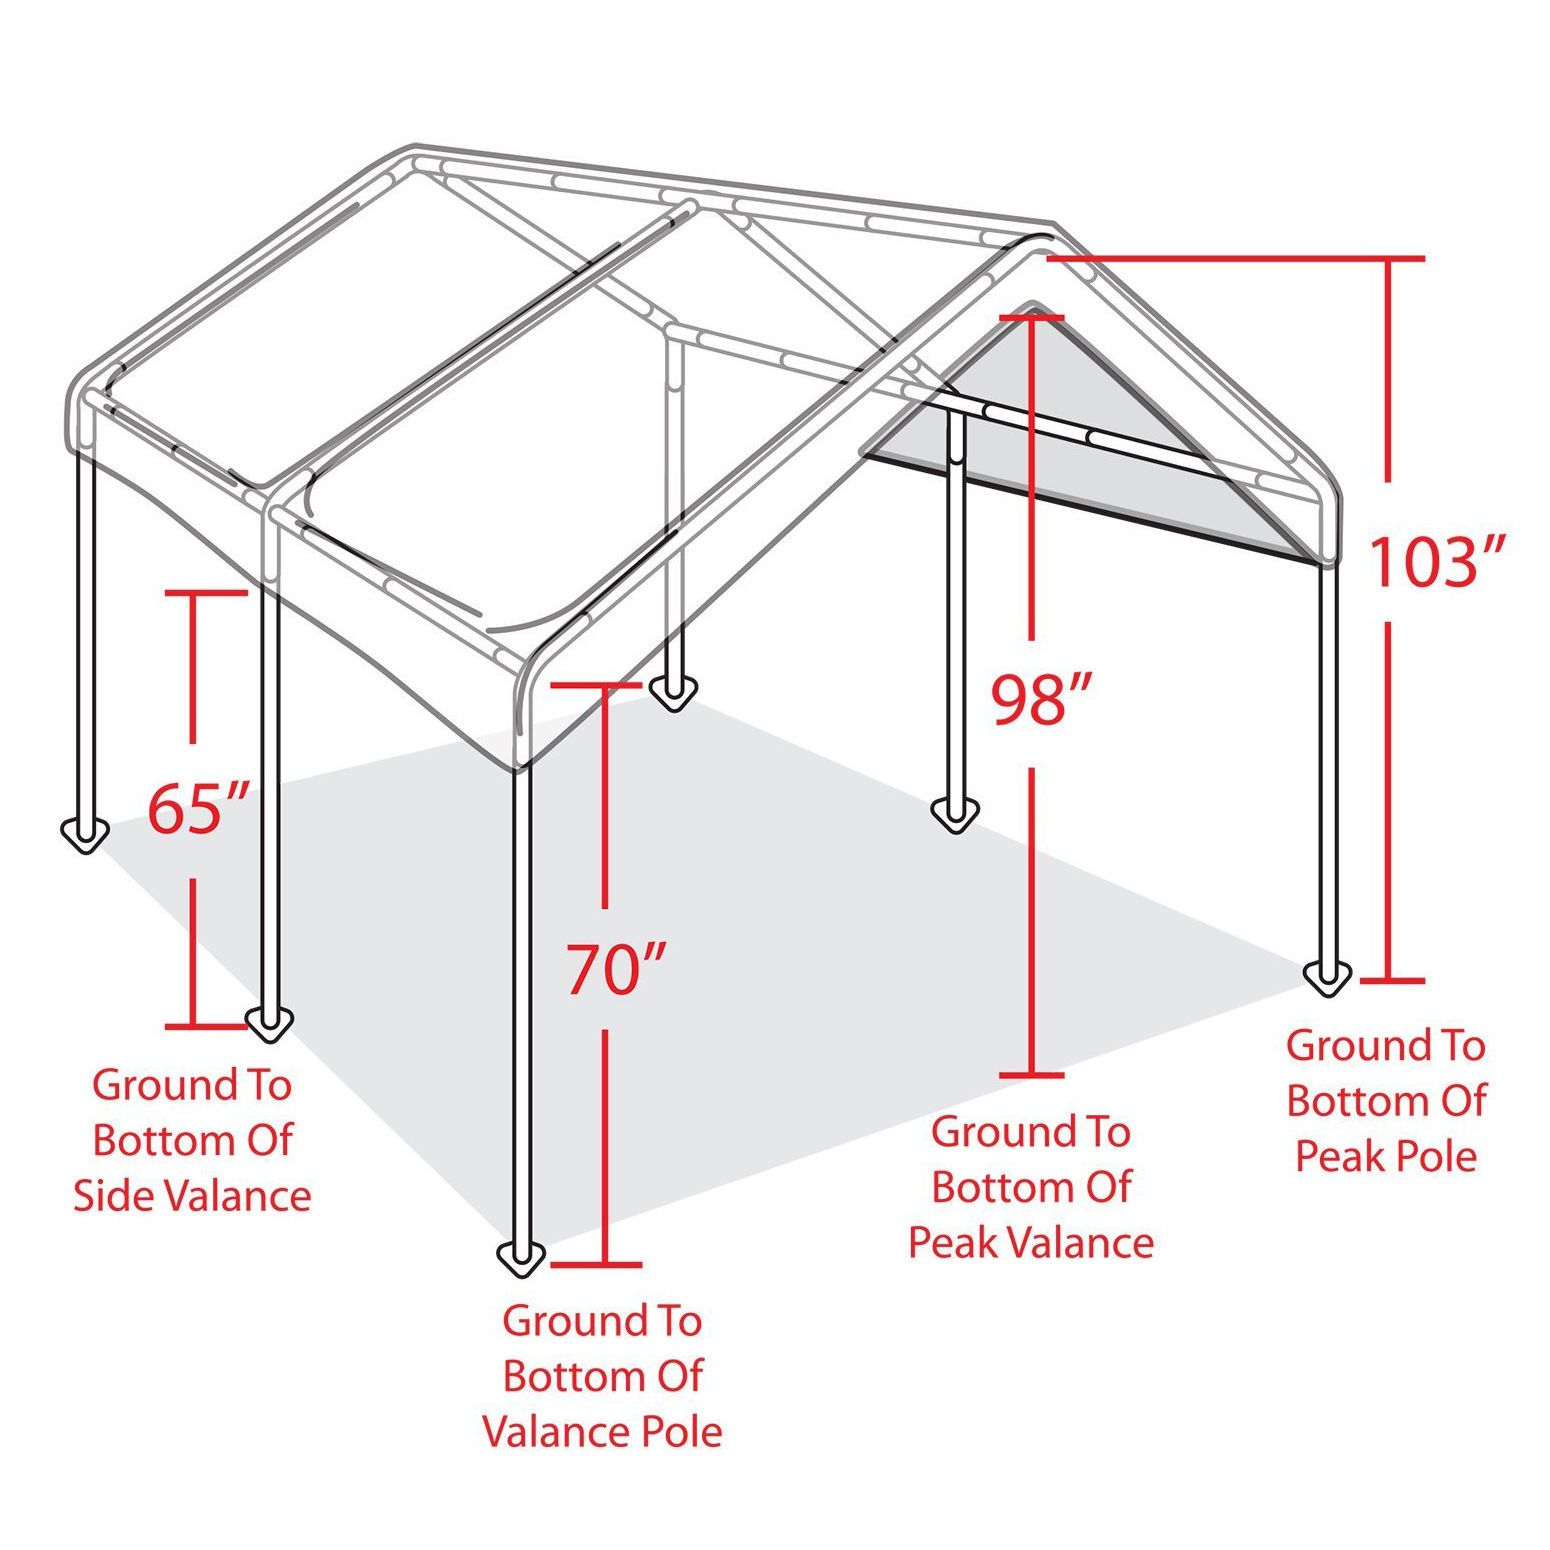 Outdoor Carport Canopy Car Shelter Frame 10x20 Garage Cover Tent Portable Gazebo Ebay Carport Canopy Car Shelter Portable Gazebo